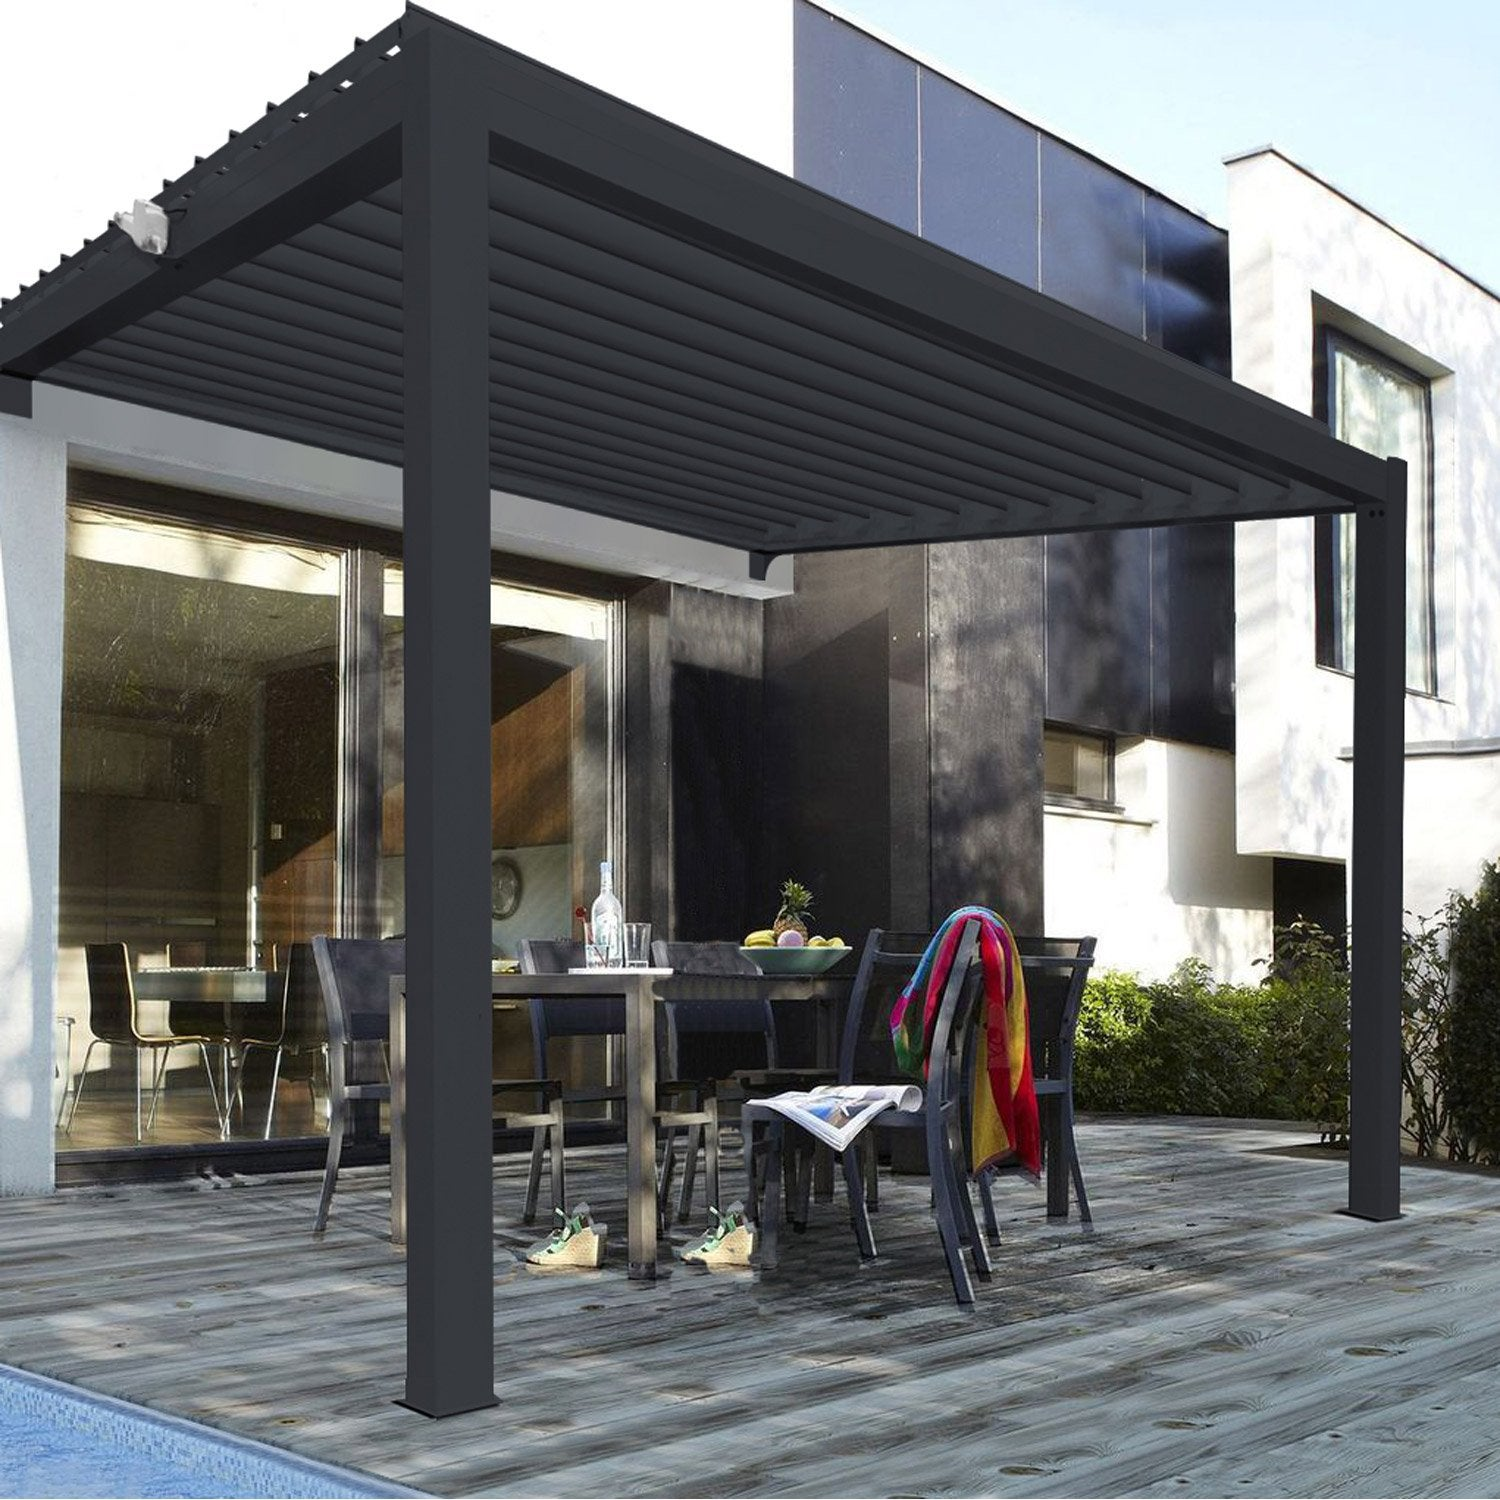 pergola adosse fer forg castorama pergolas en fer forg sur mesure with pergola adosse fer forg. Black Bedroom Furniture Sets. Home Design Ideas